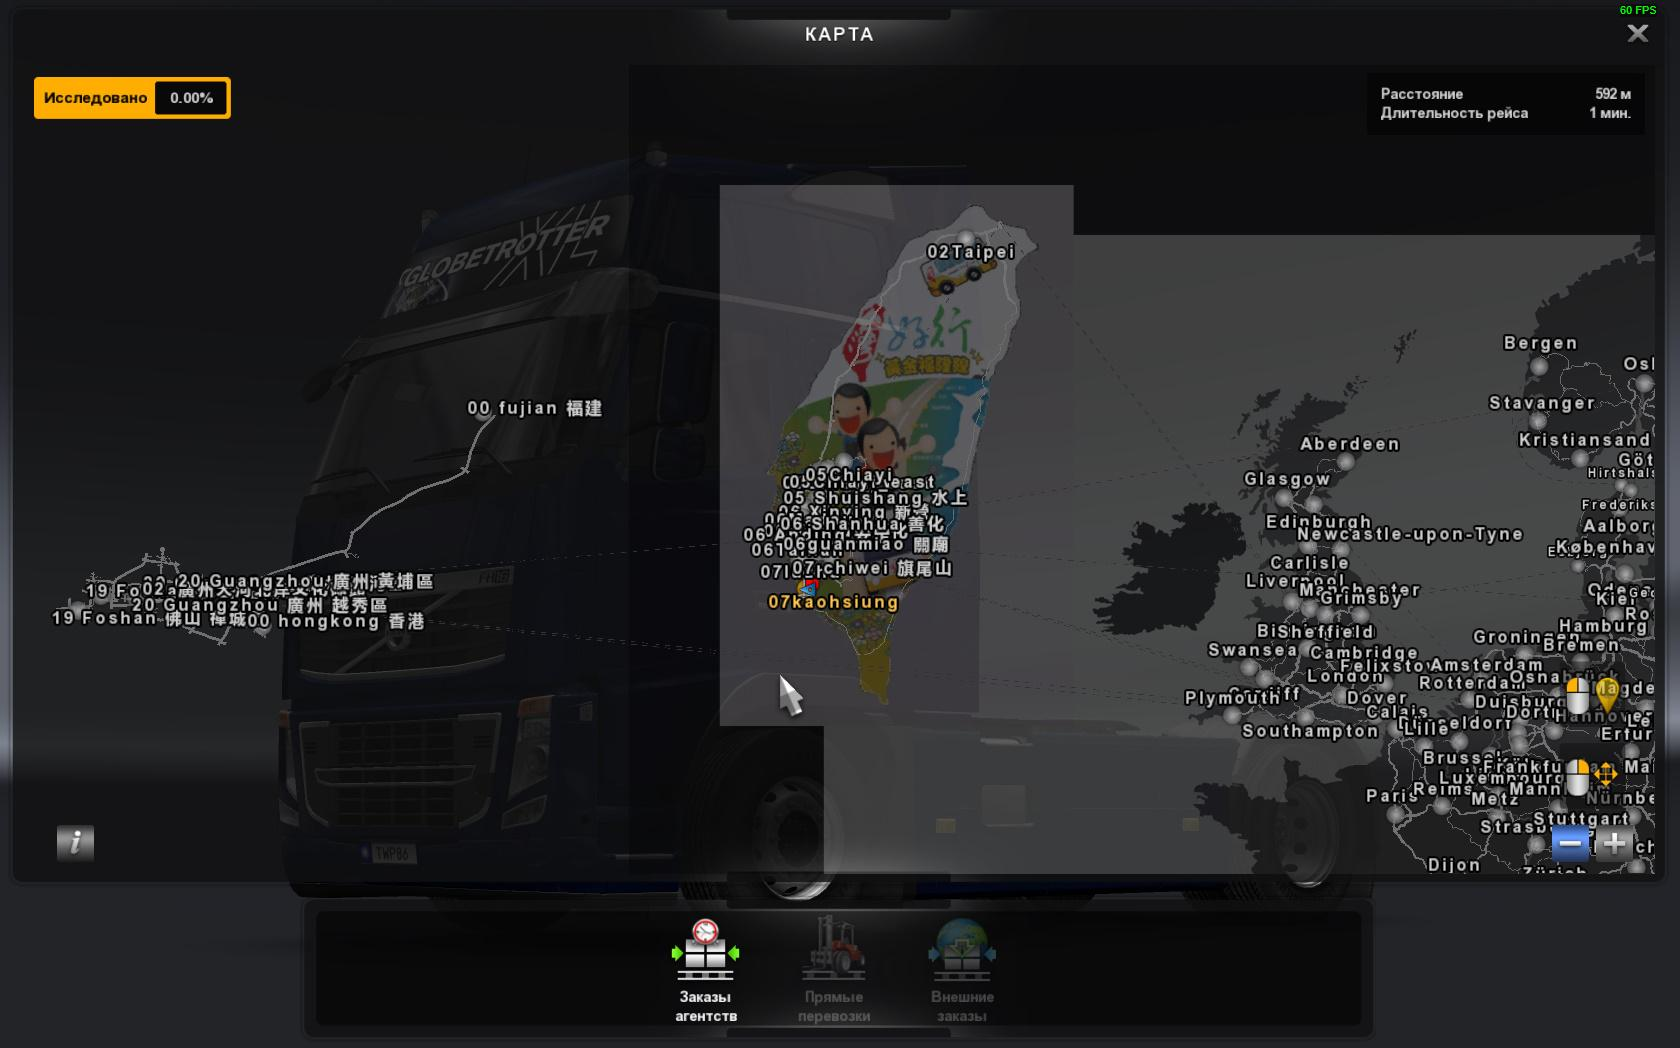 R.O.C (Republic of China) Taiwan map & P.R.C map add-on v0.18 Update 1.25